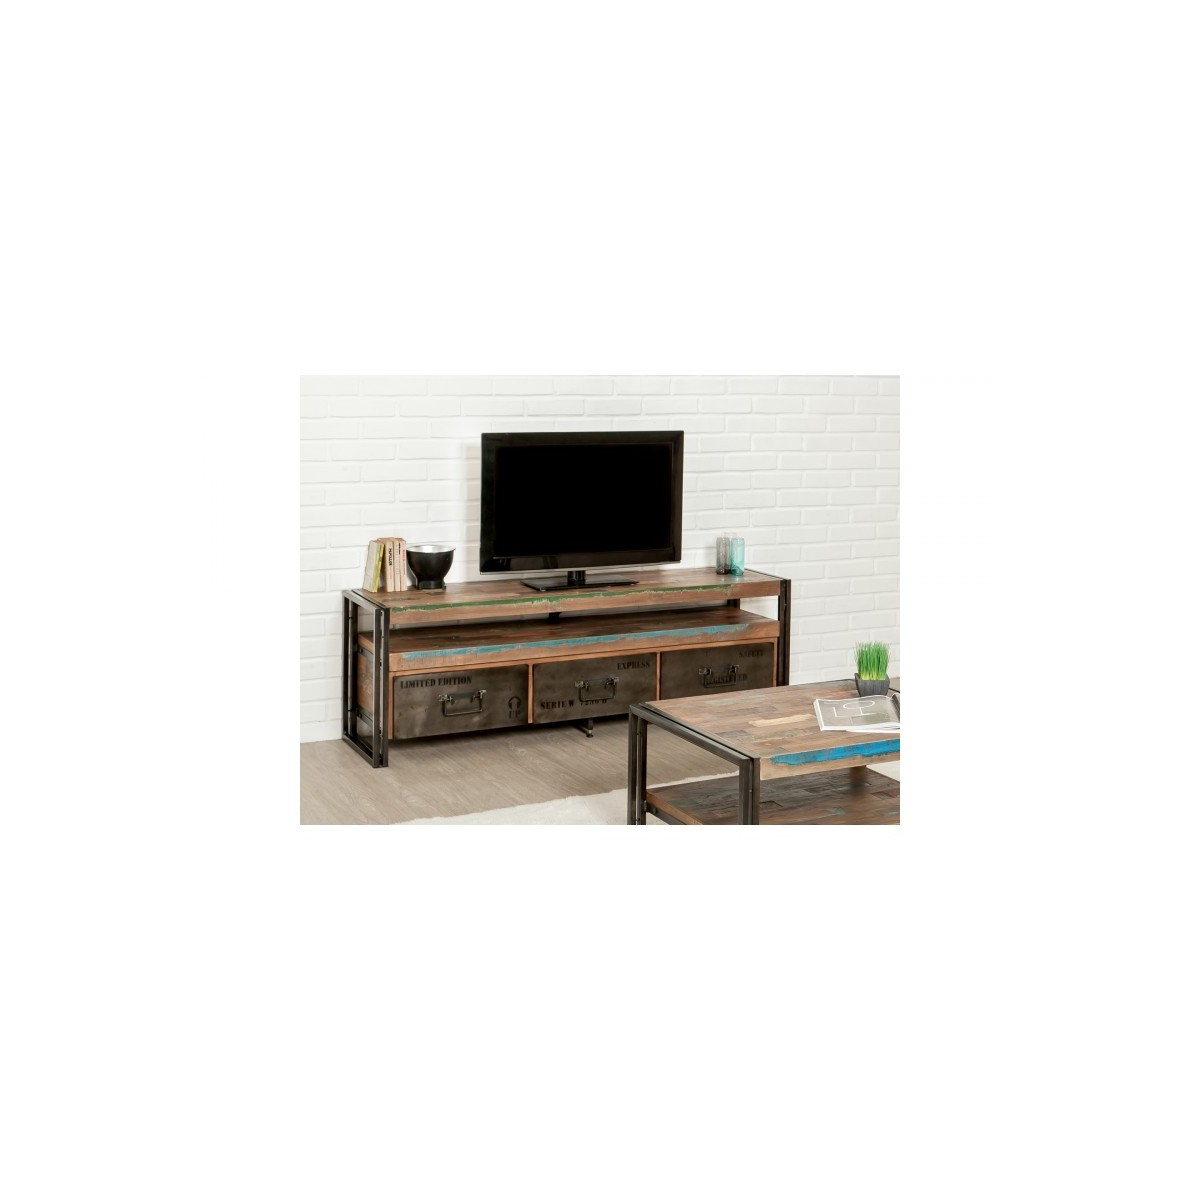 furnished 3 drawers 1 low tv niche 160